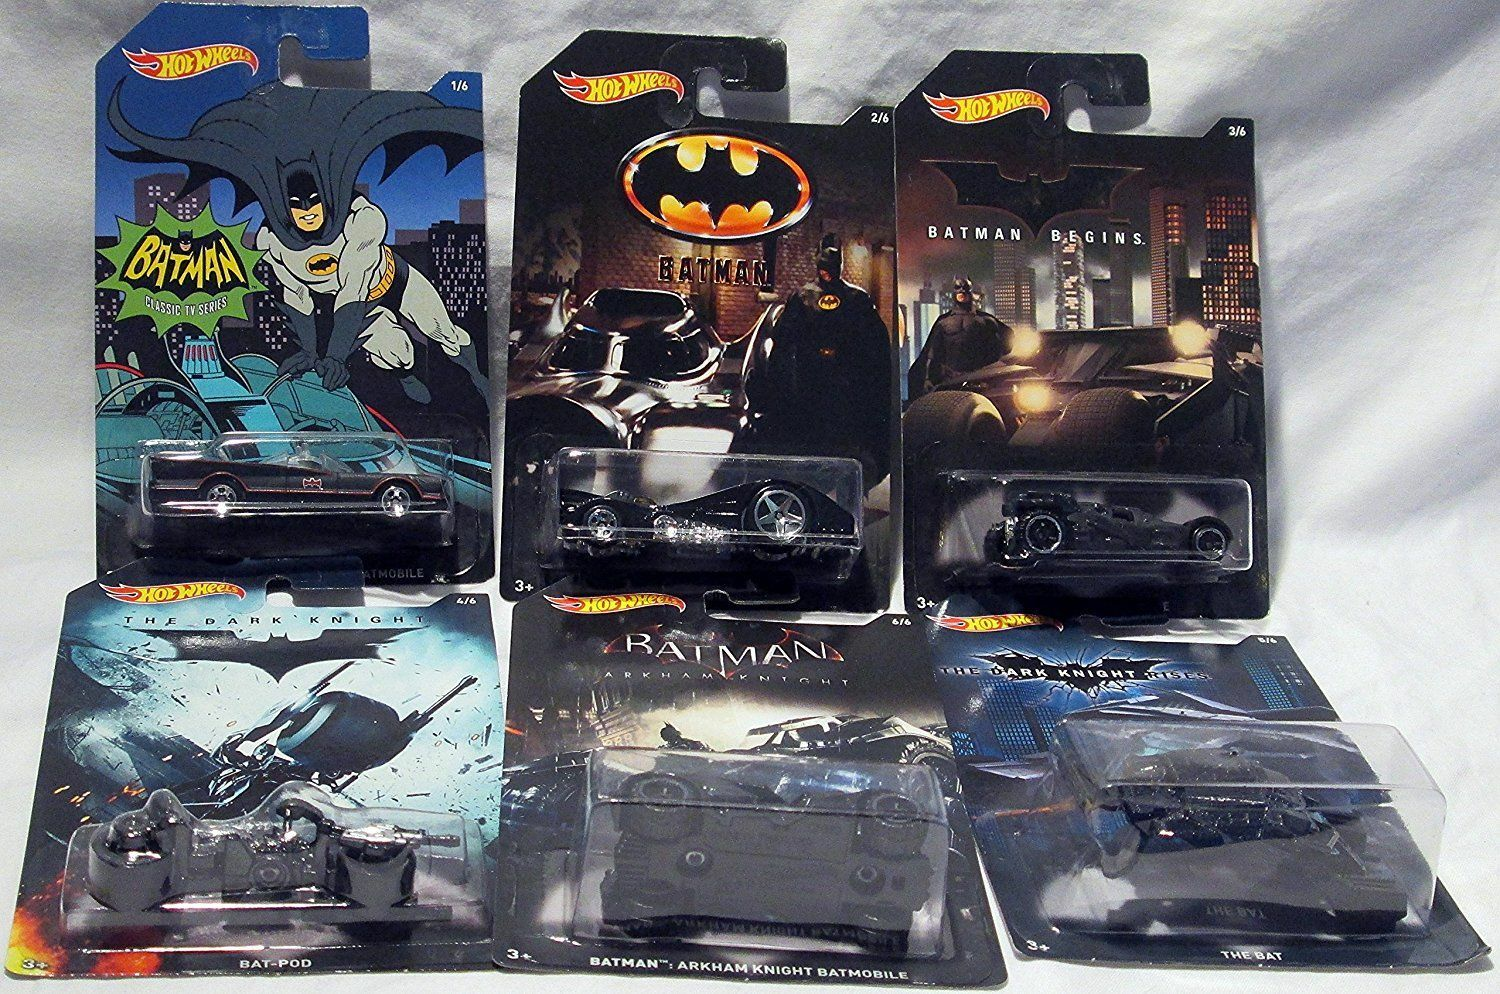 1955 chevy stepside tow truck black jada toys bigtime - Hot Wheels 2015 Batman Bundle Set Of 6 Exclusive Die Cast Vehicles